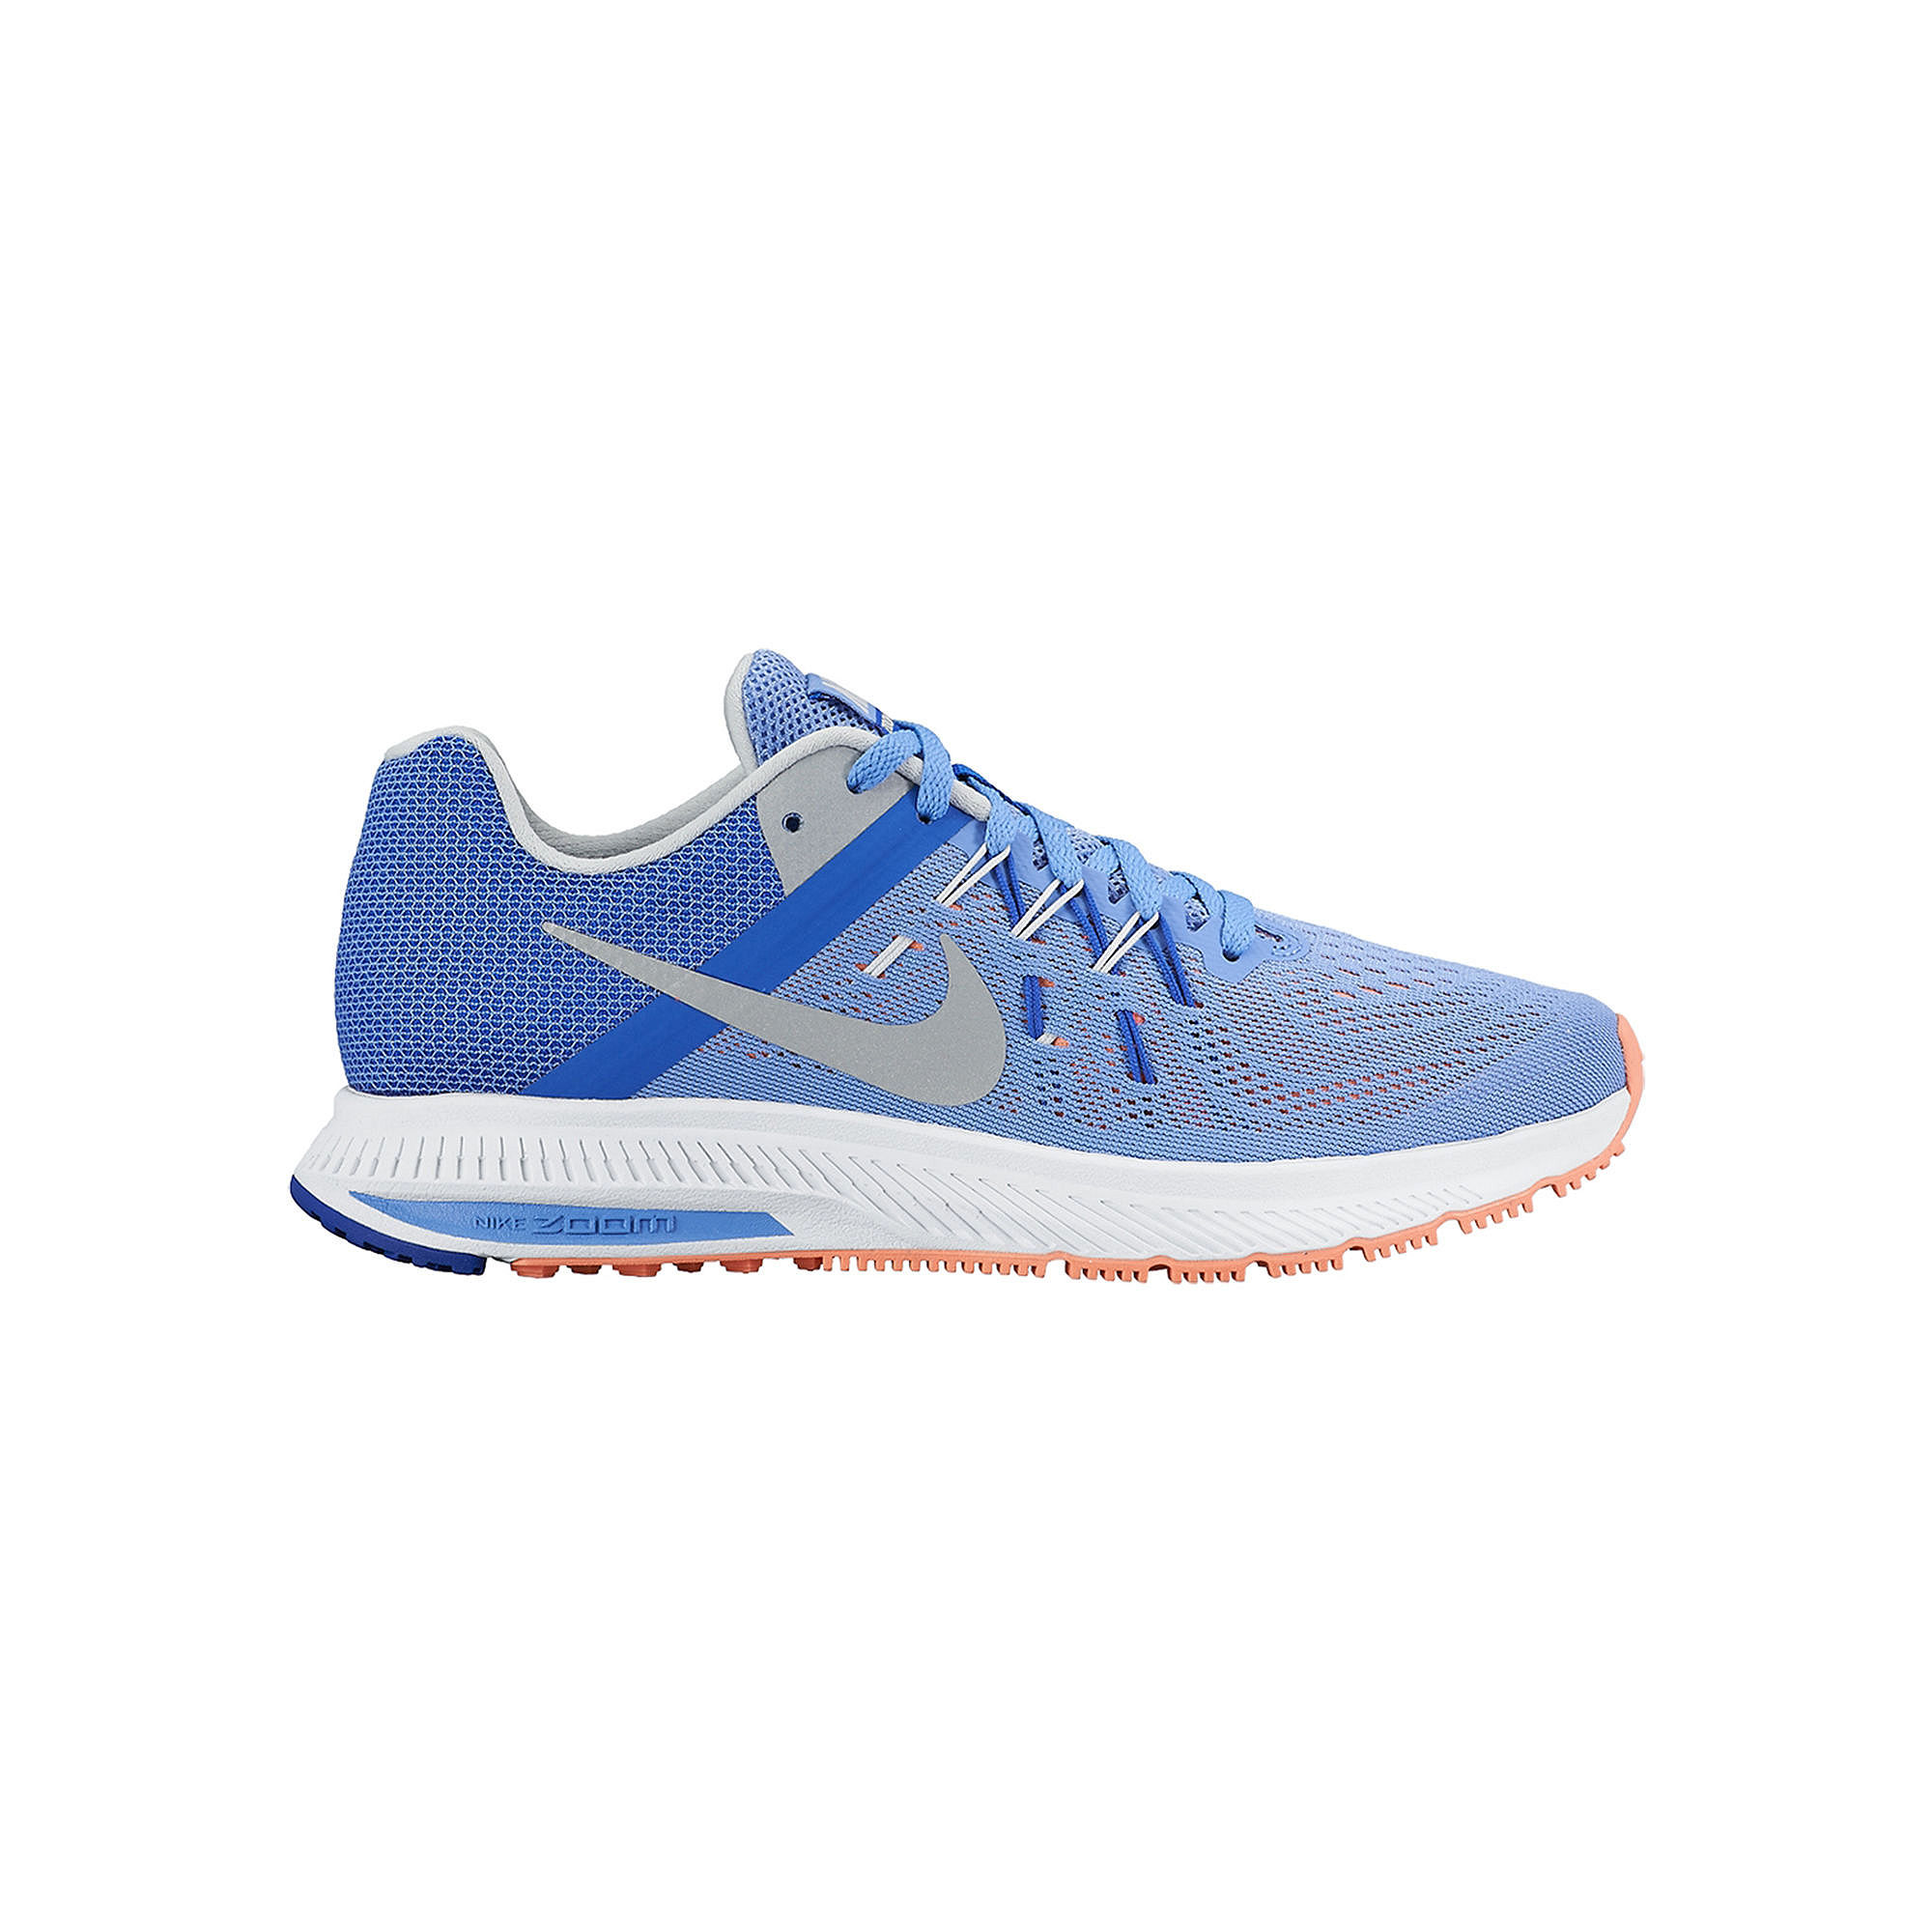 c43ee1ec360346 ... UPC 091206132305 product image for Nike Zoom Winflo 2 Womens Running  Shoes